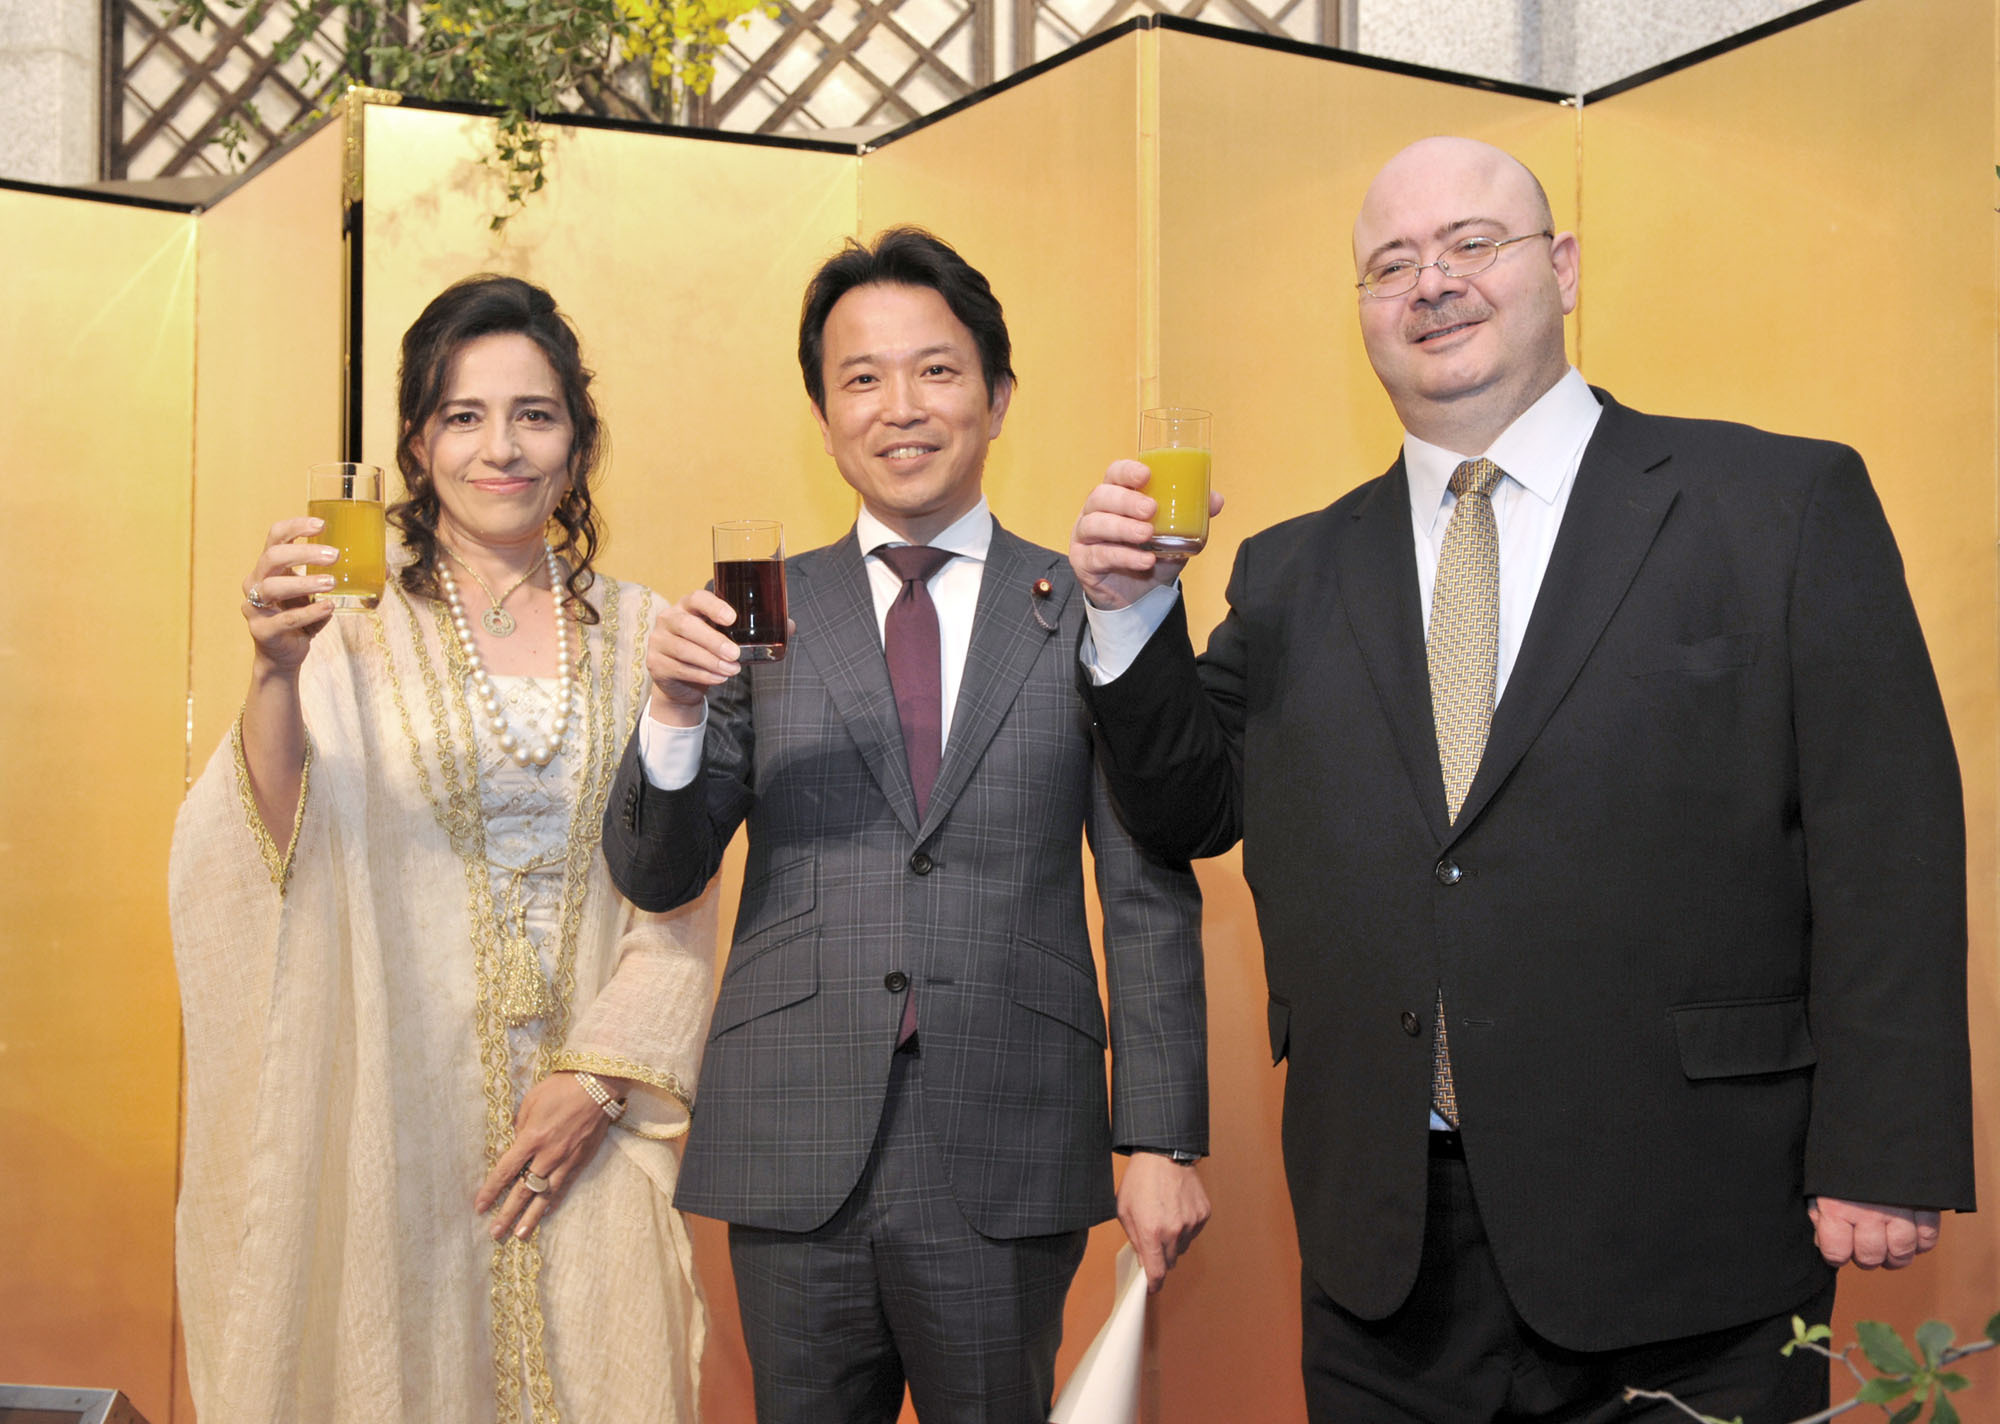 Jordan Ambassador Demiye Haddad (right), and his wife, Shifa (left), share a toast with Parliamentary Vice-Minister for Foreign Affairs Masakazu Hamachi during a reception to celebrate the 70th Anniversary of the country's Independence Day and The Centennial of the Great Arab Revolt, at the Hotel Okura Tokyo on May 25. | YOSHIAKI MIURA